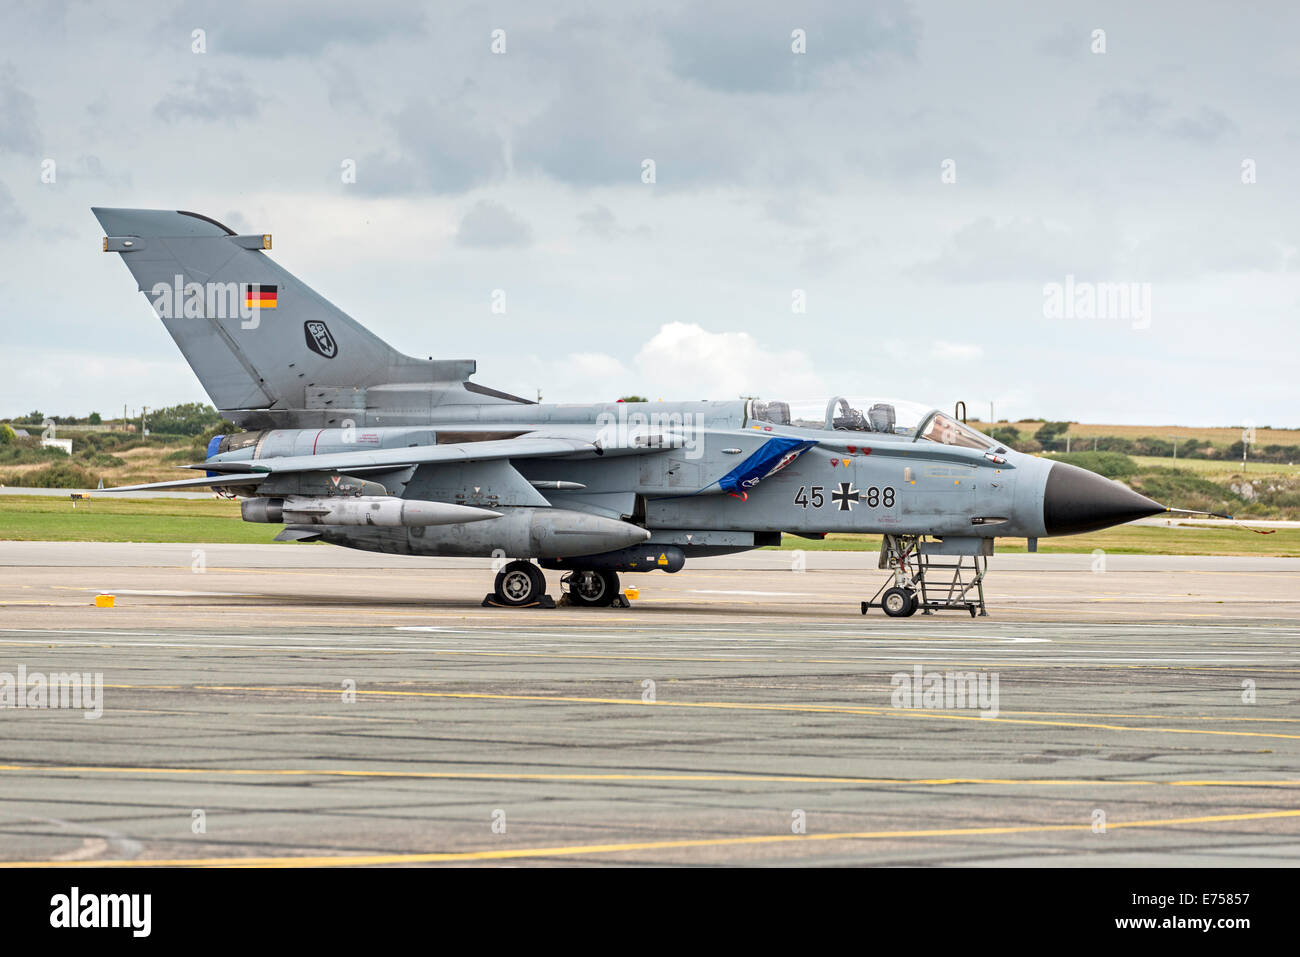 RAF Valley Anglesey North Wales Uk  45+88 - Panavia Tornado IDS - Taktisches LuftwaffeGerman Air Force - Stock Image